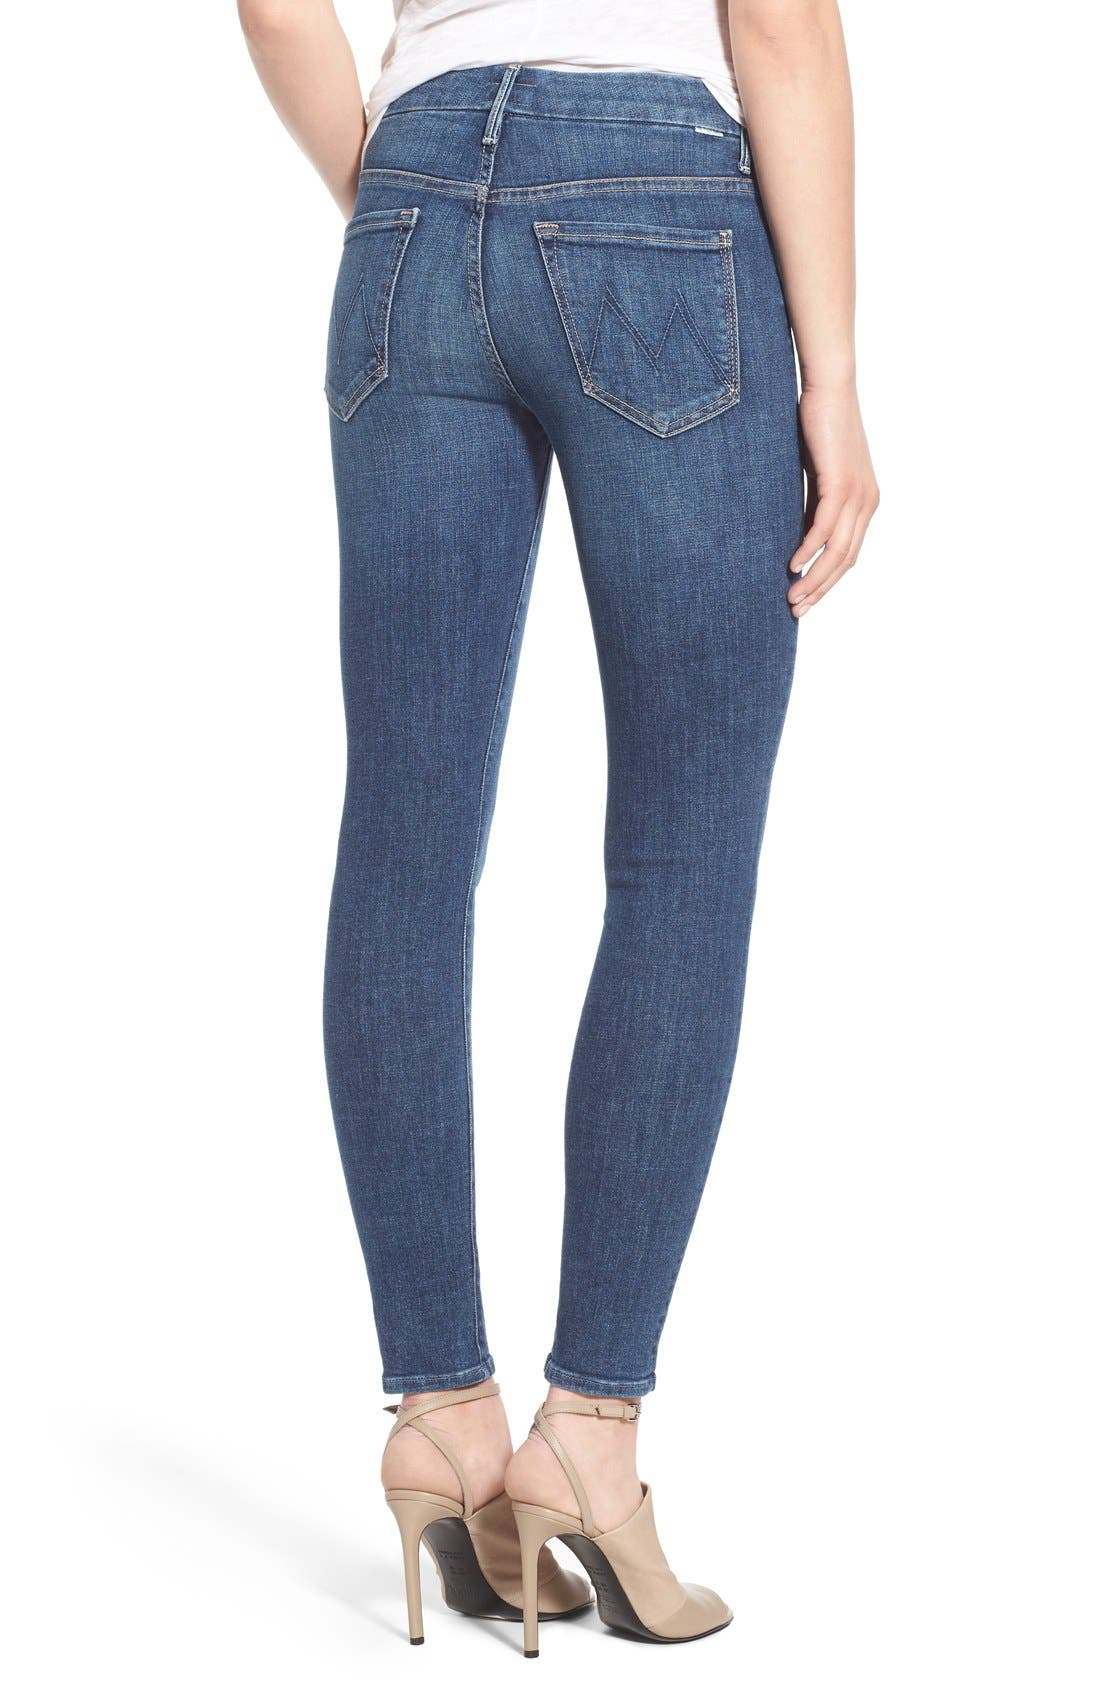 Alternate Image 2  - MOTHER 'The Looker' High Rise Skinny Jeans (Girl Crush)